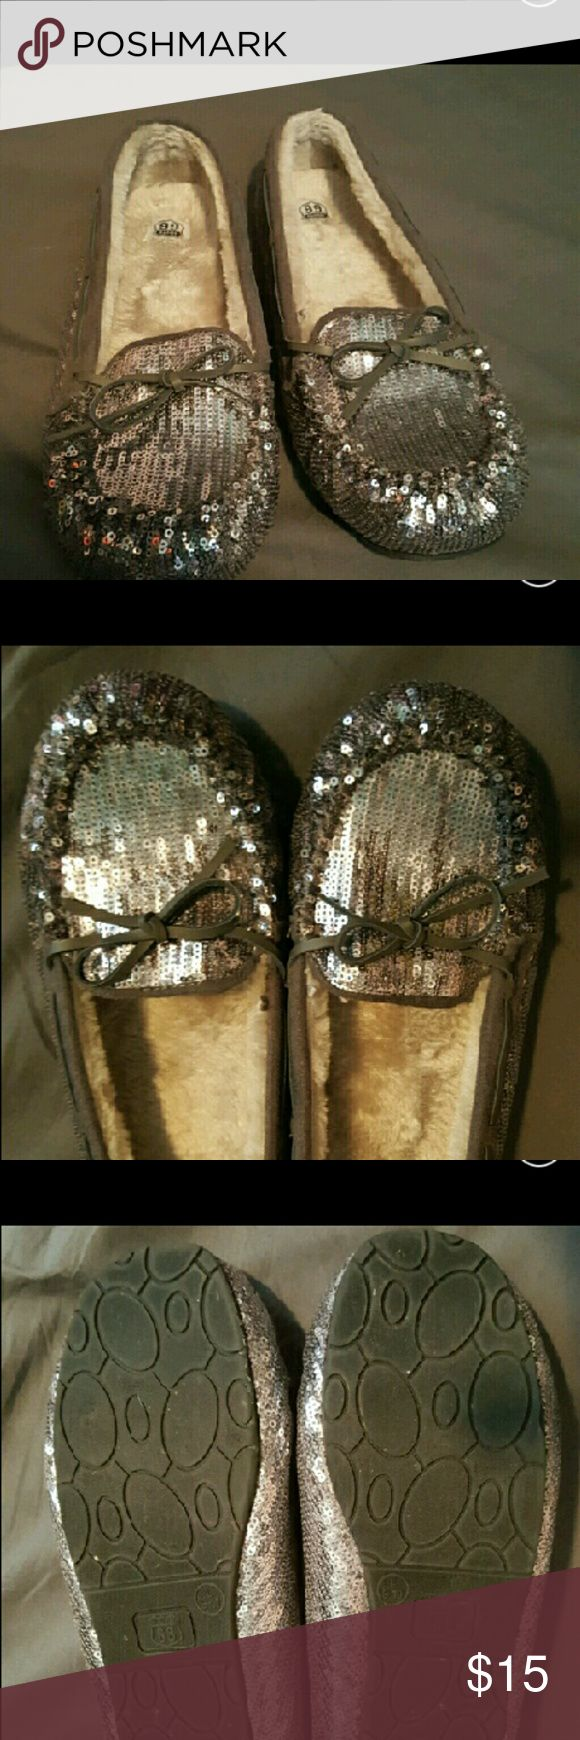 Silver/puter sequinced slippers!!! Adorable reposhed slippers,too big for me,looking for a new home!! Route 66 Shoes Flats & Loafers